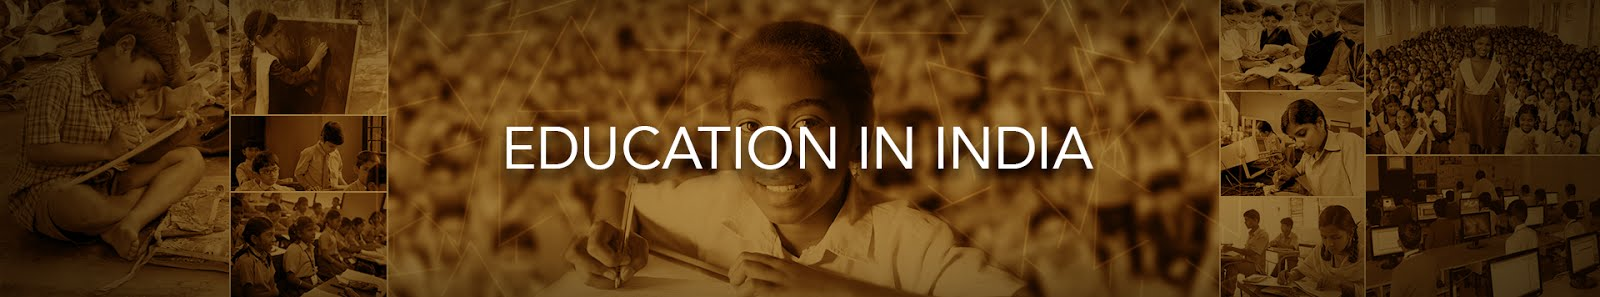 Education in India, Higher Education, School Education